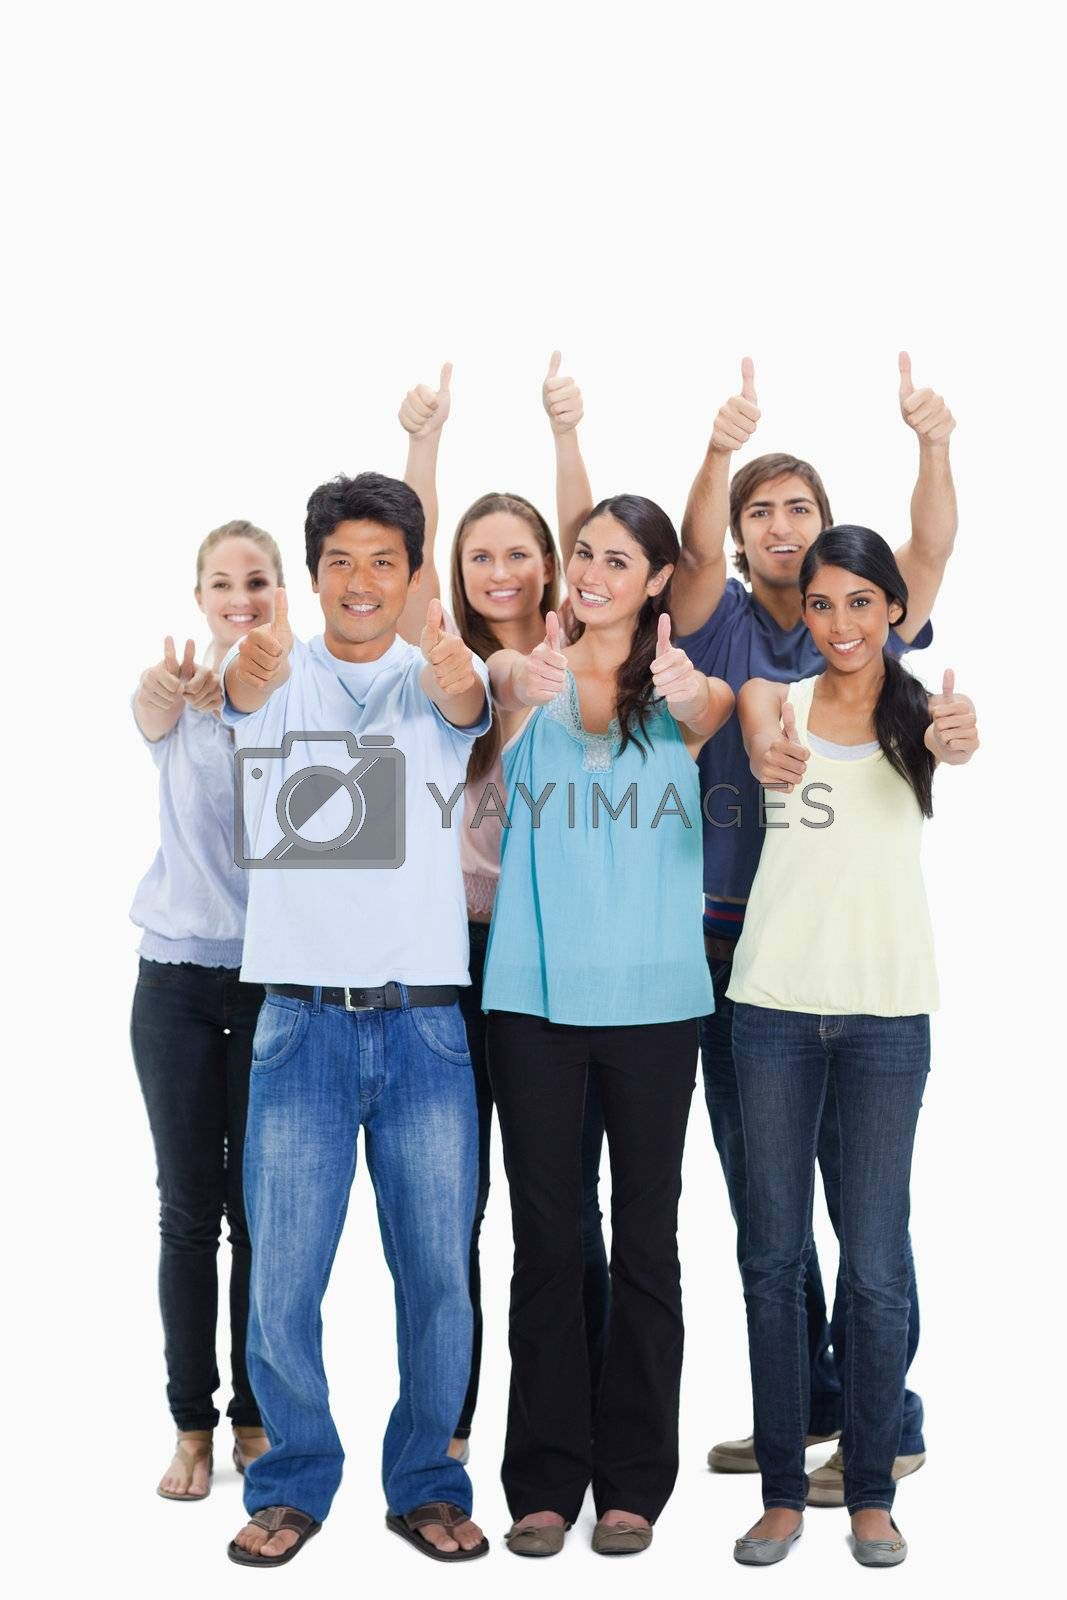 People smiling together and approving with the thumbs-up against white background